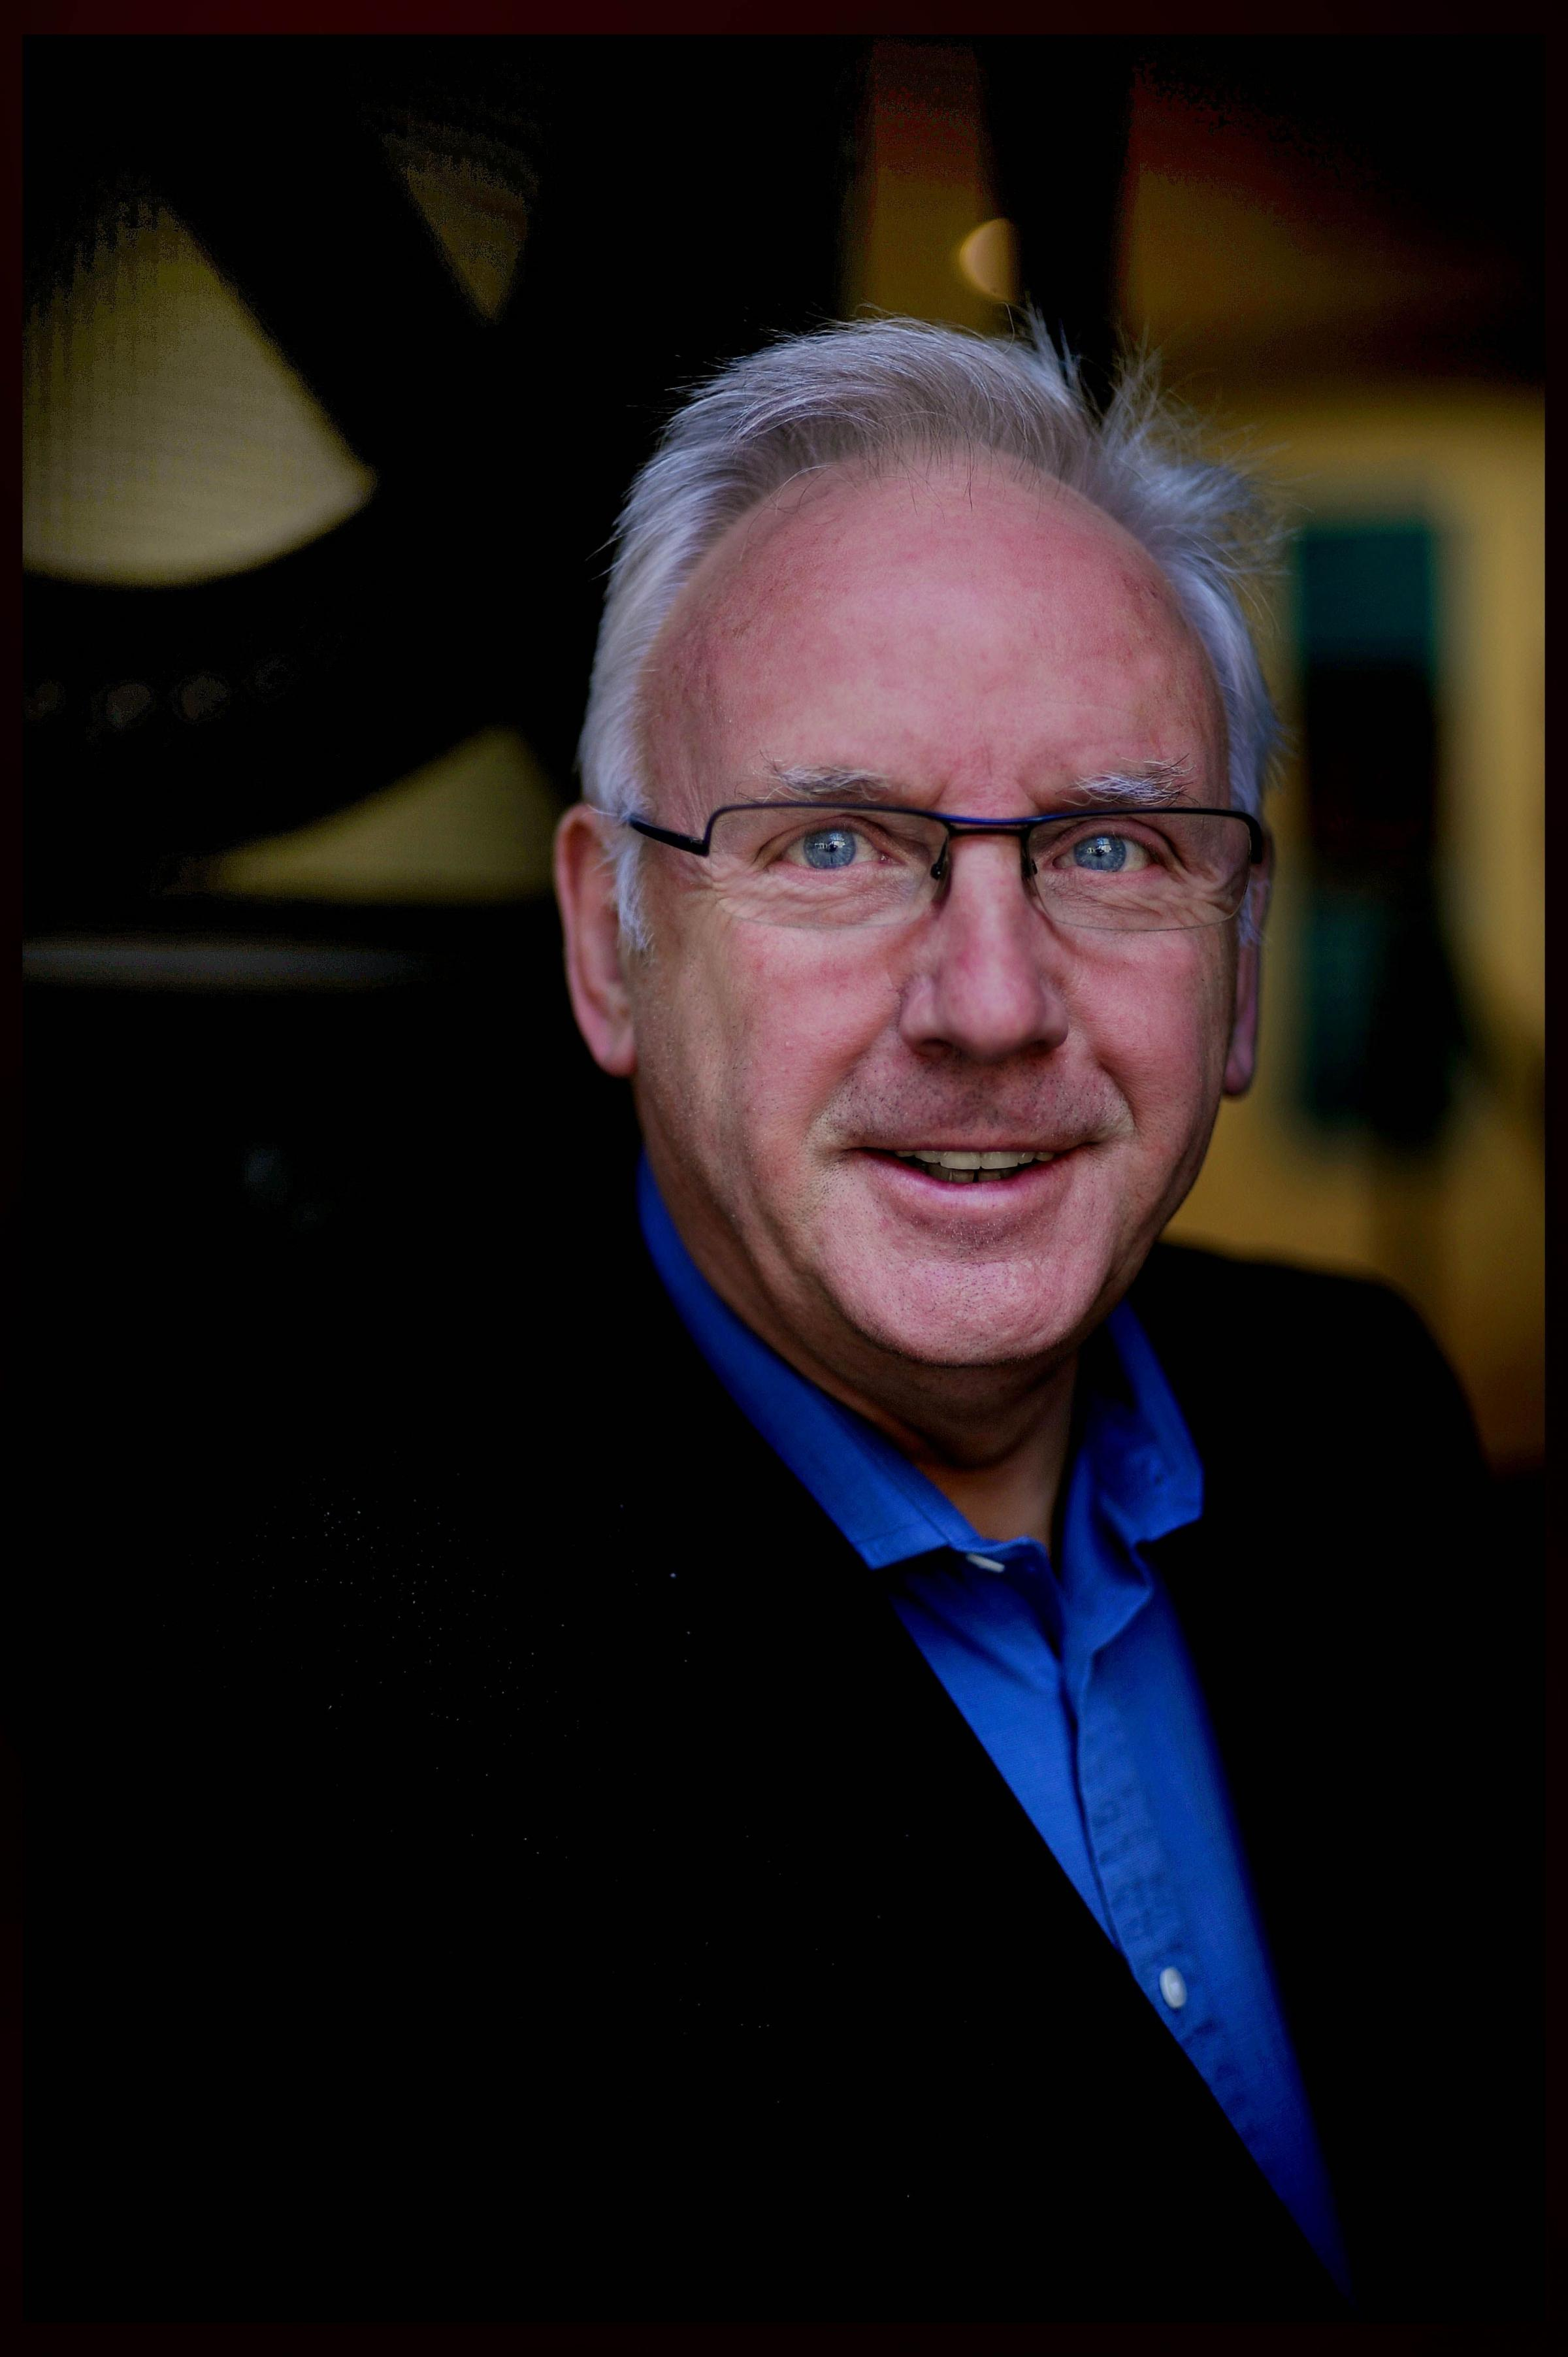 Sarah Lee - Pete Waterman.